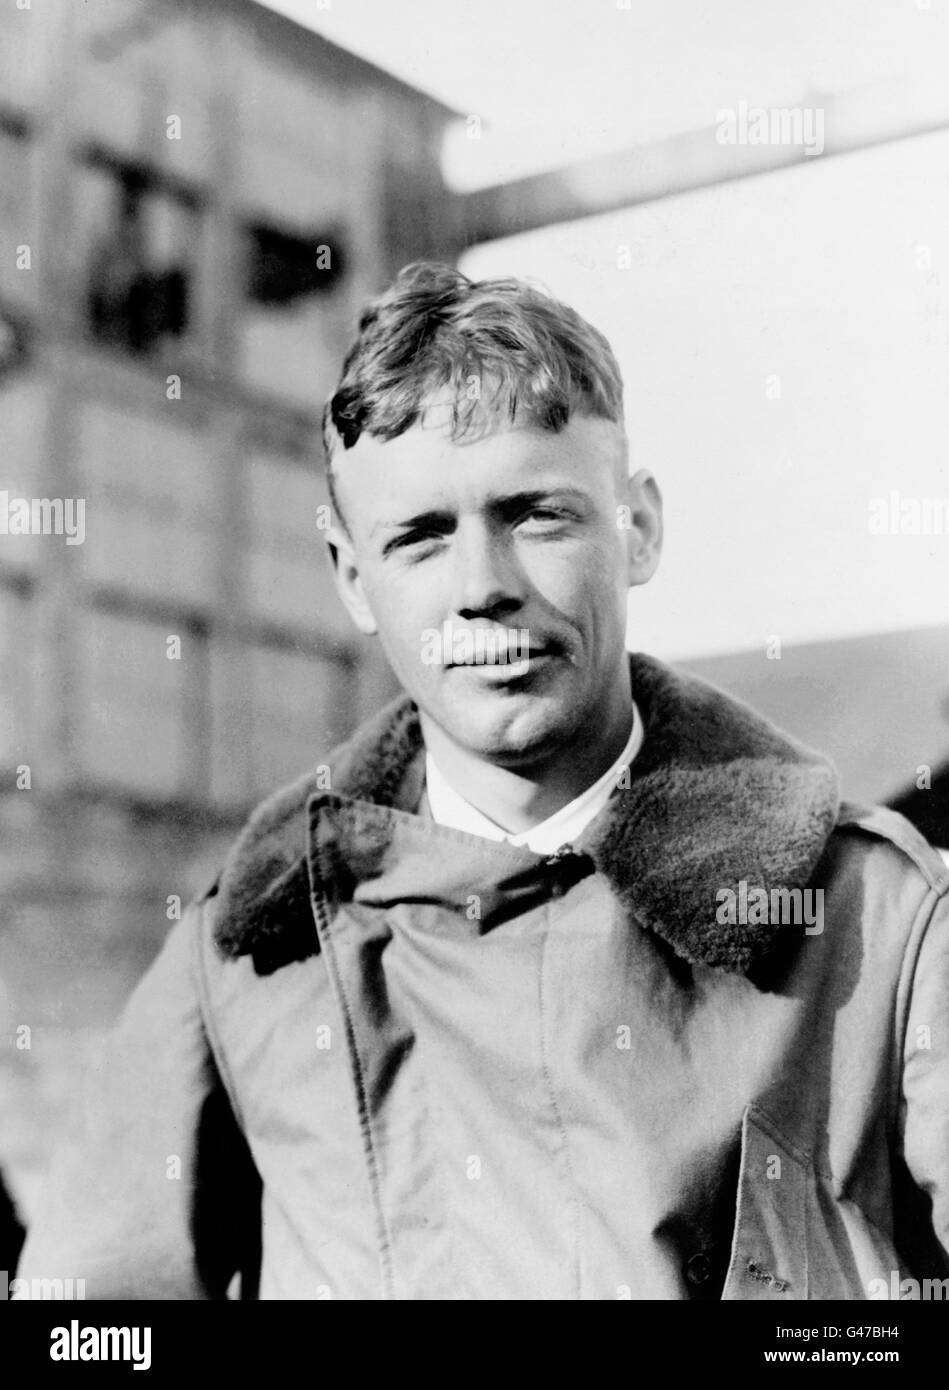 a biography of charles lindbergh a famous american aviator Anne morrow lindbergh: a biography susan aviator charles lindbergh  my only knowledge of the lindbergh's was the famous flight and the kidnapping as i read in.